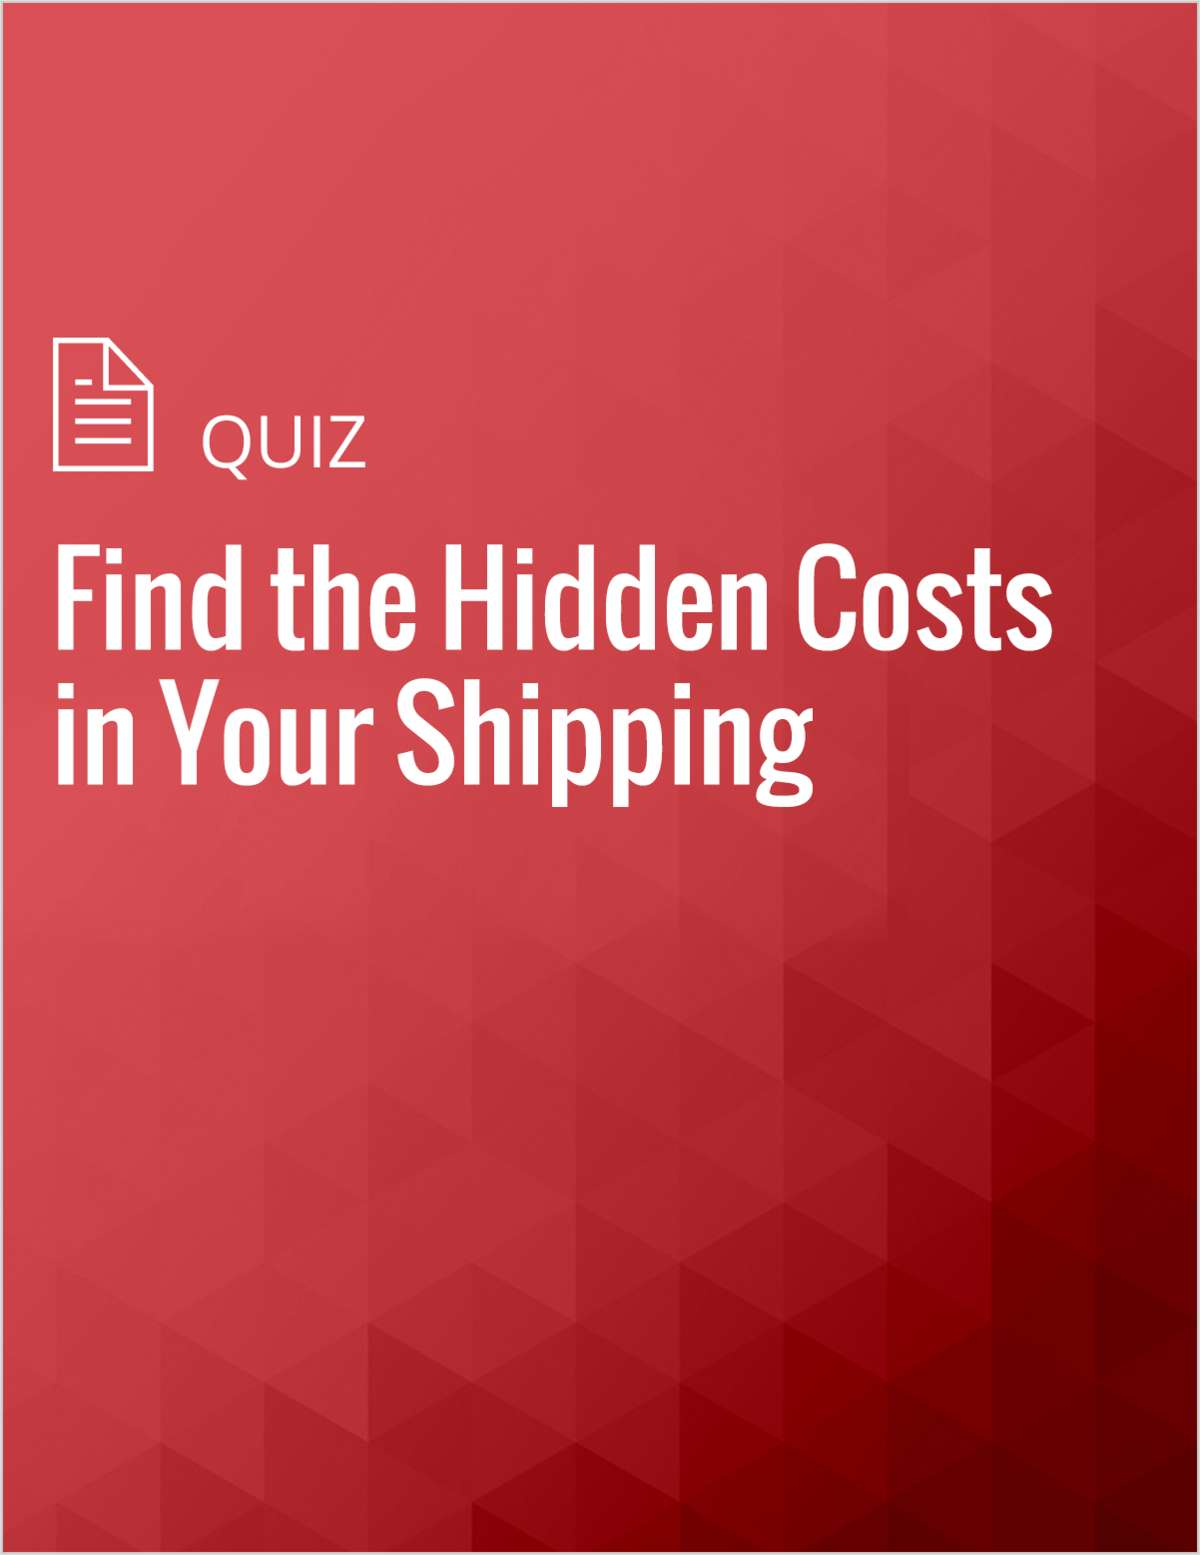 Find the Hidden Costs in Your Shipping